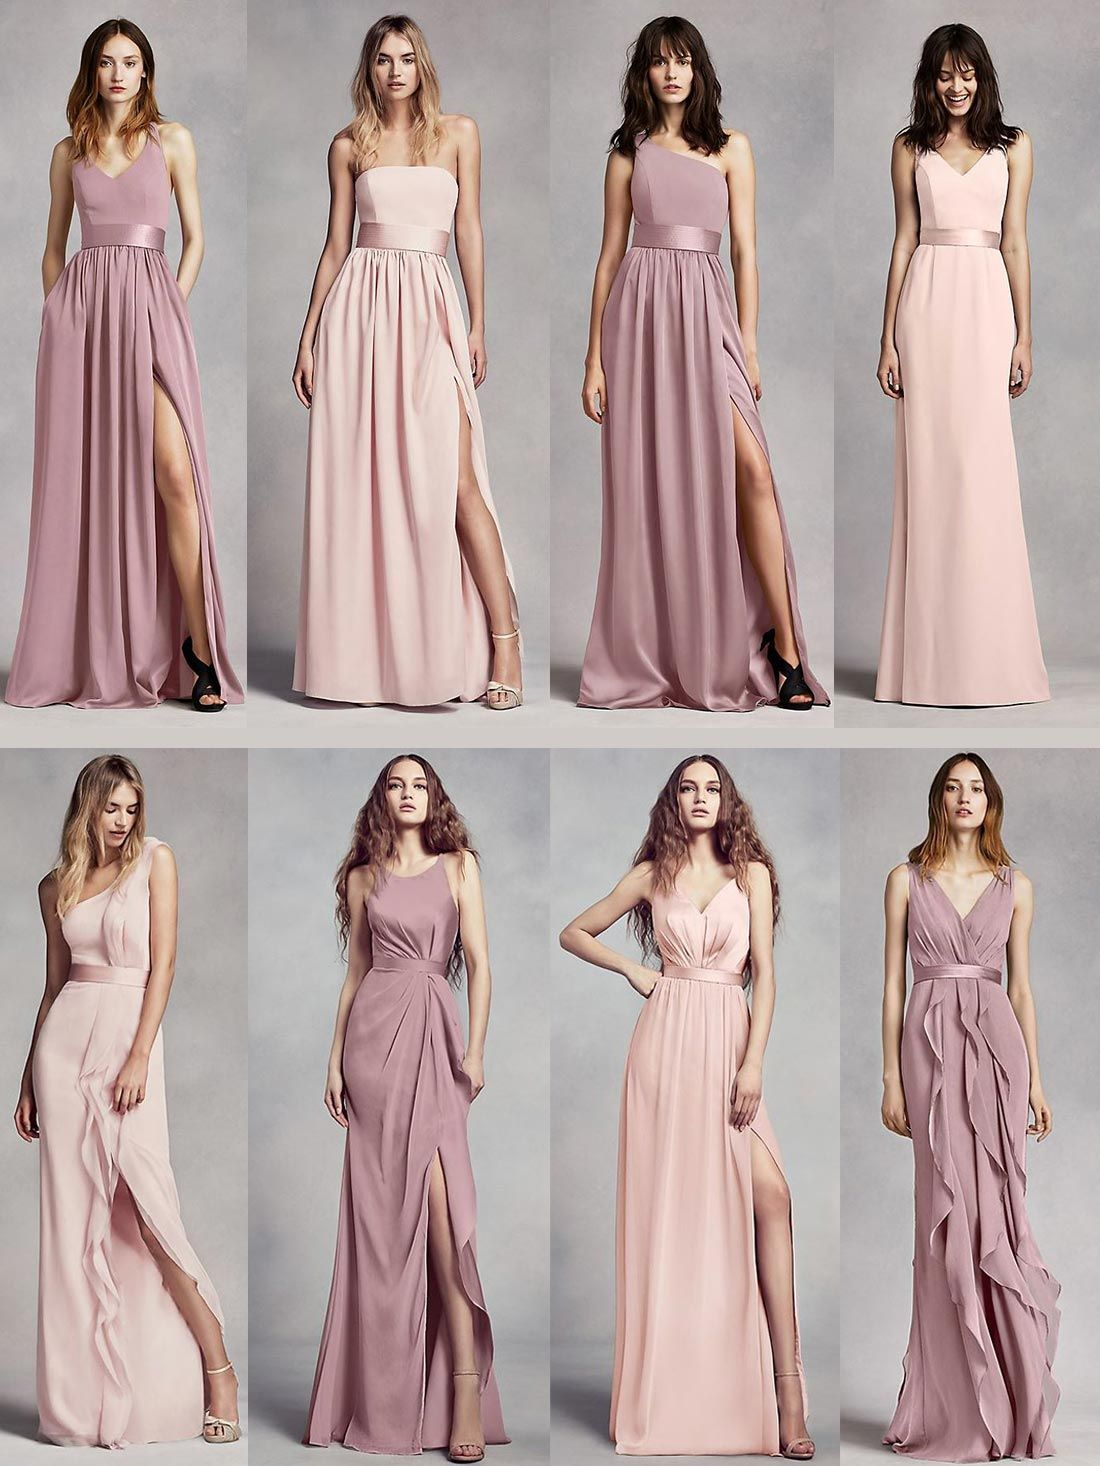 b01159d61a David s Bridal mix and match bridesmaids dresses that will work perfectly  for your upcoming wedding. Additionally